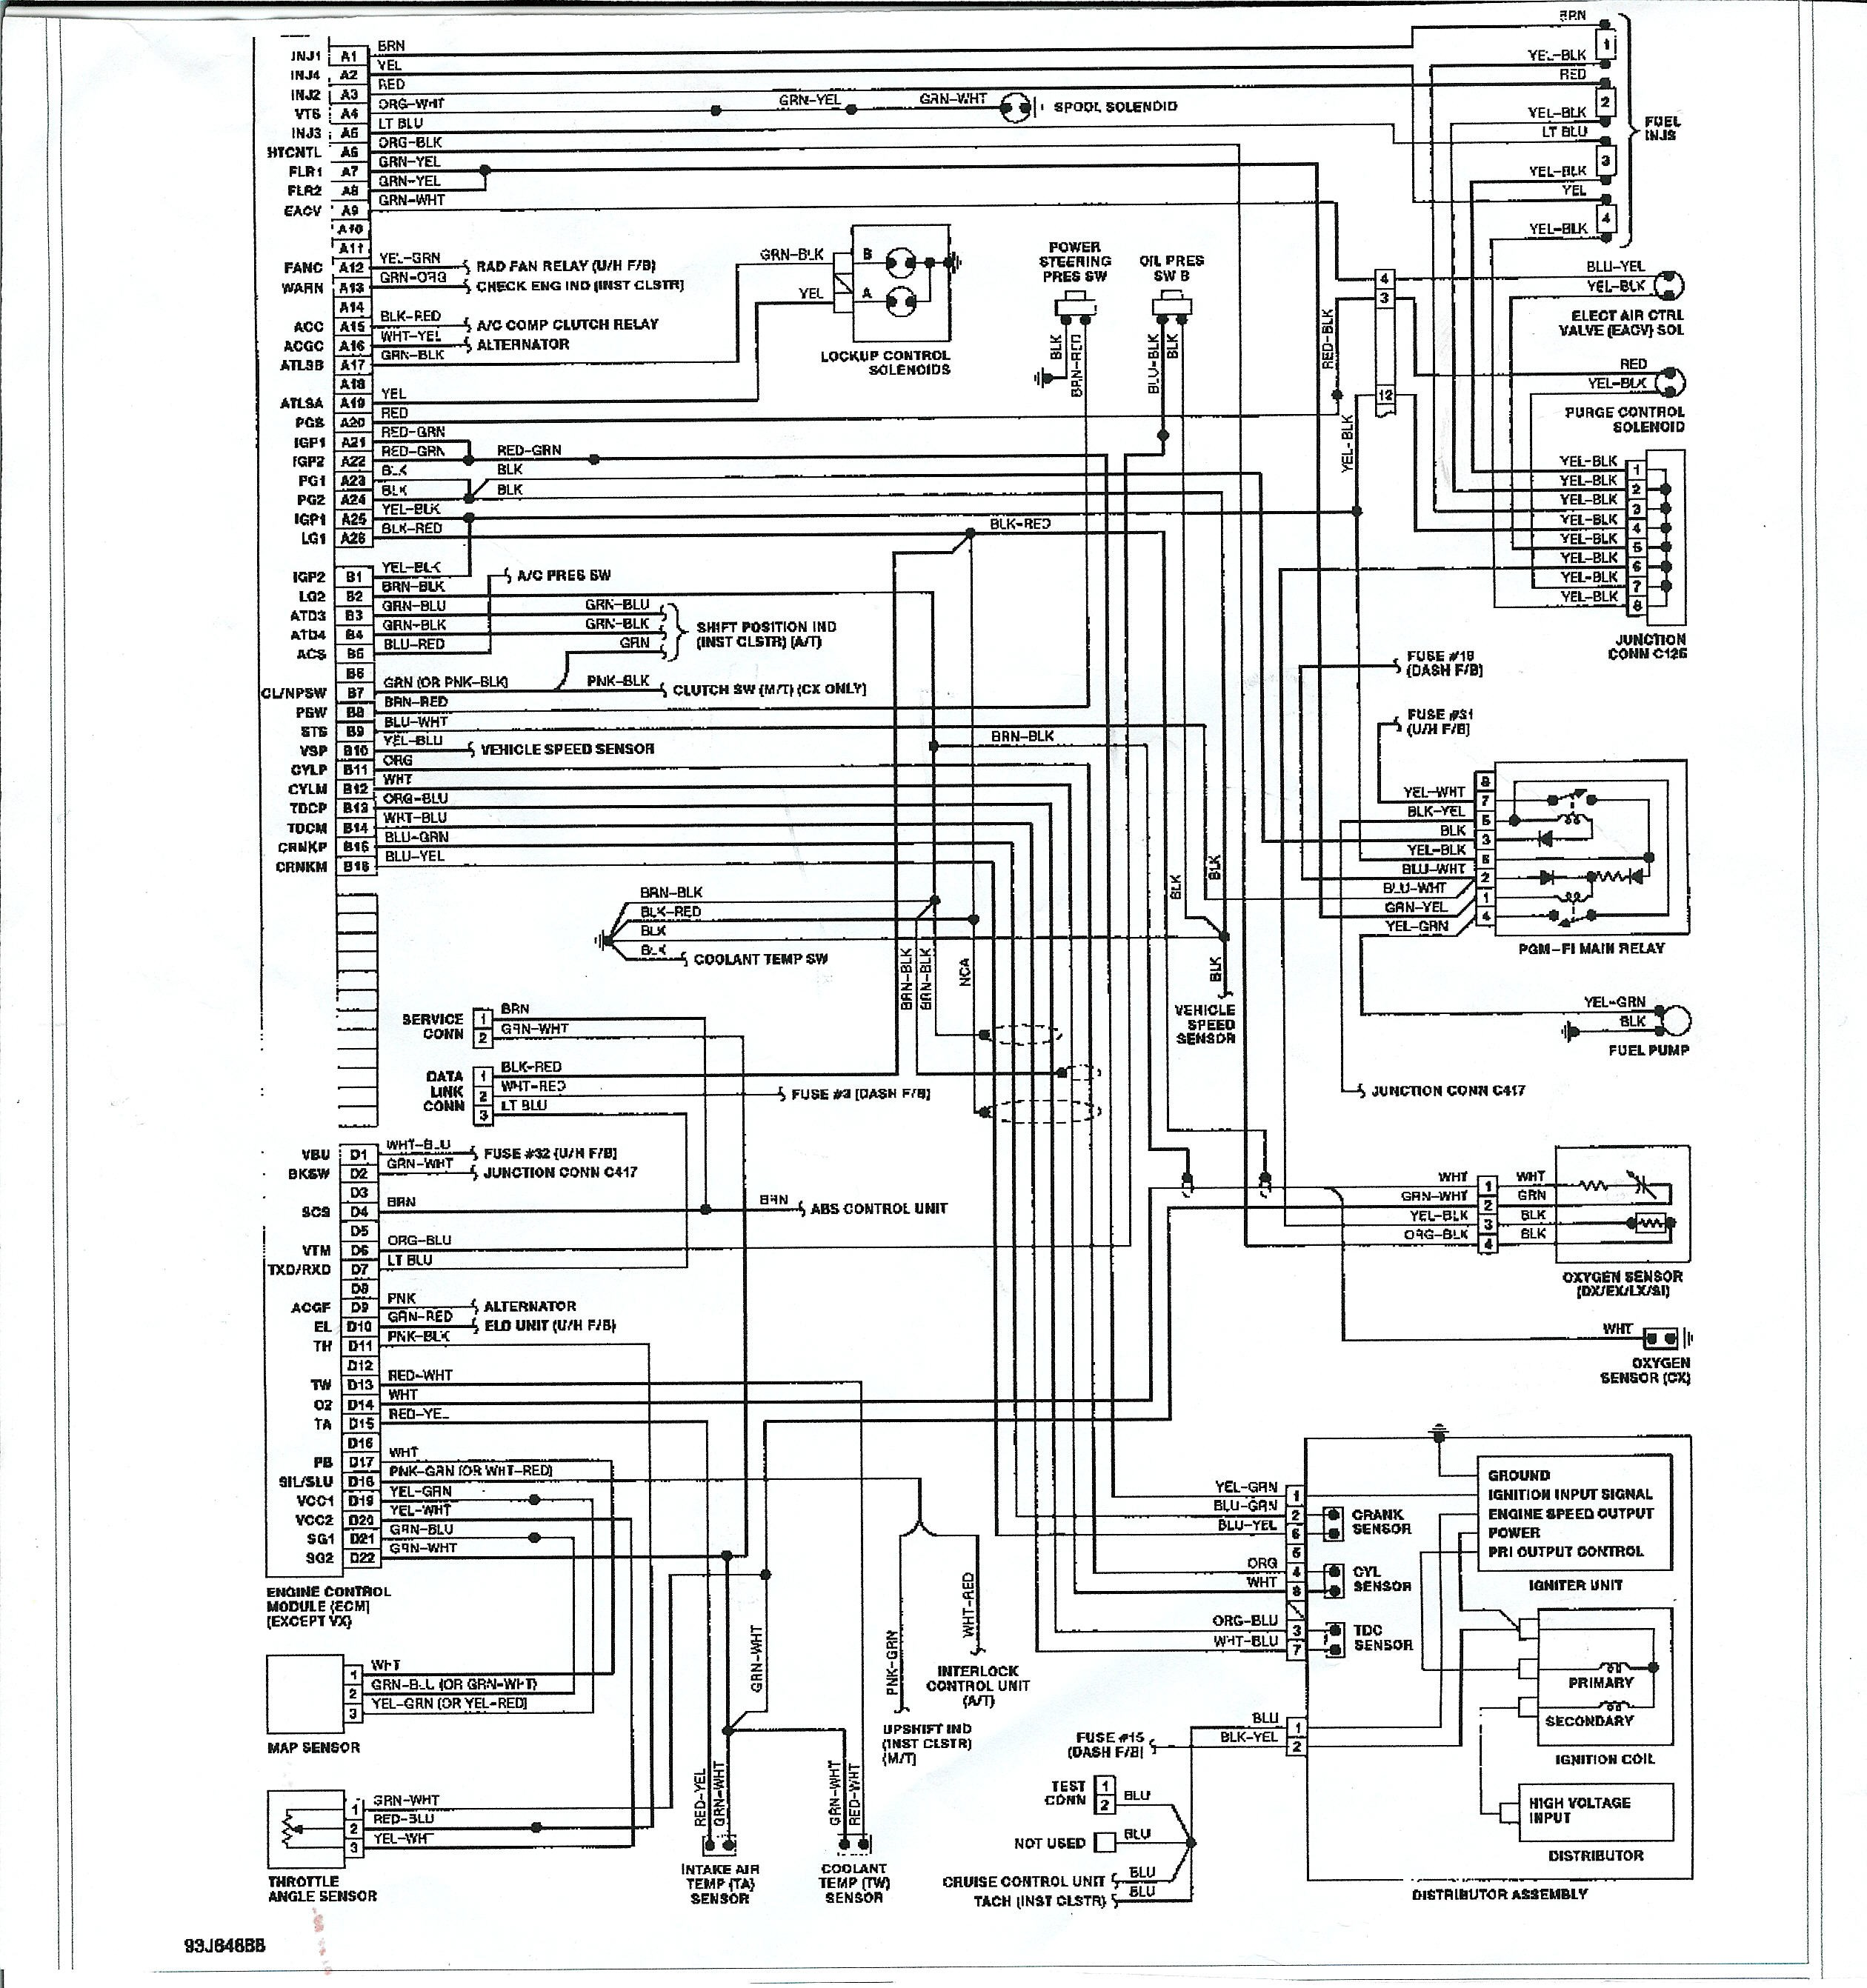 Honda Civic Fuse Panel Diagram